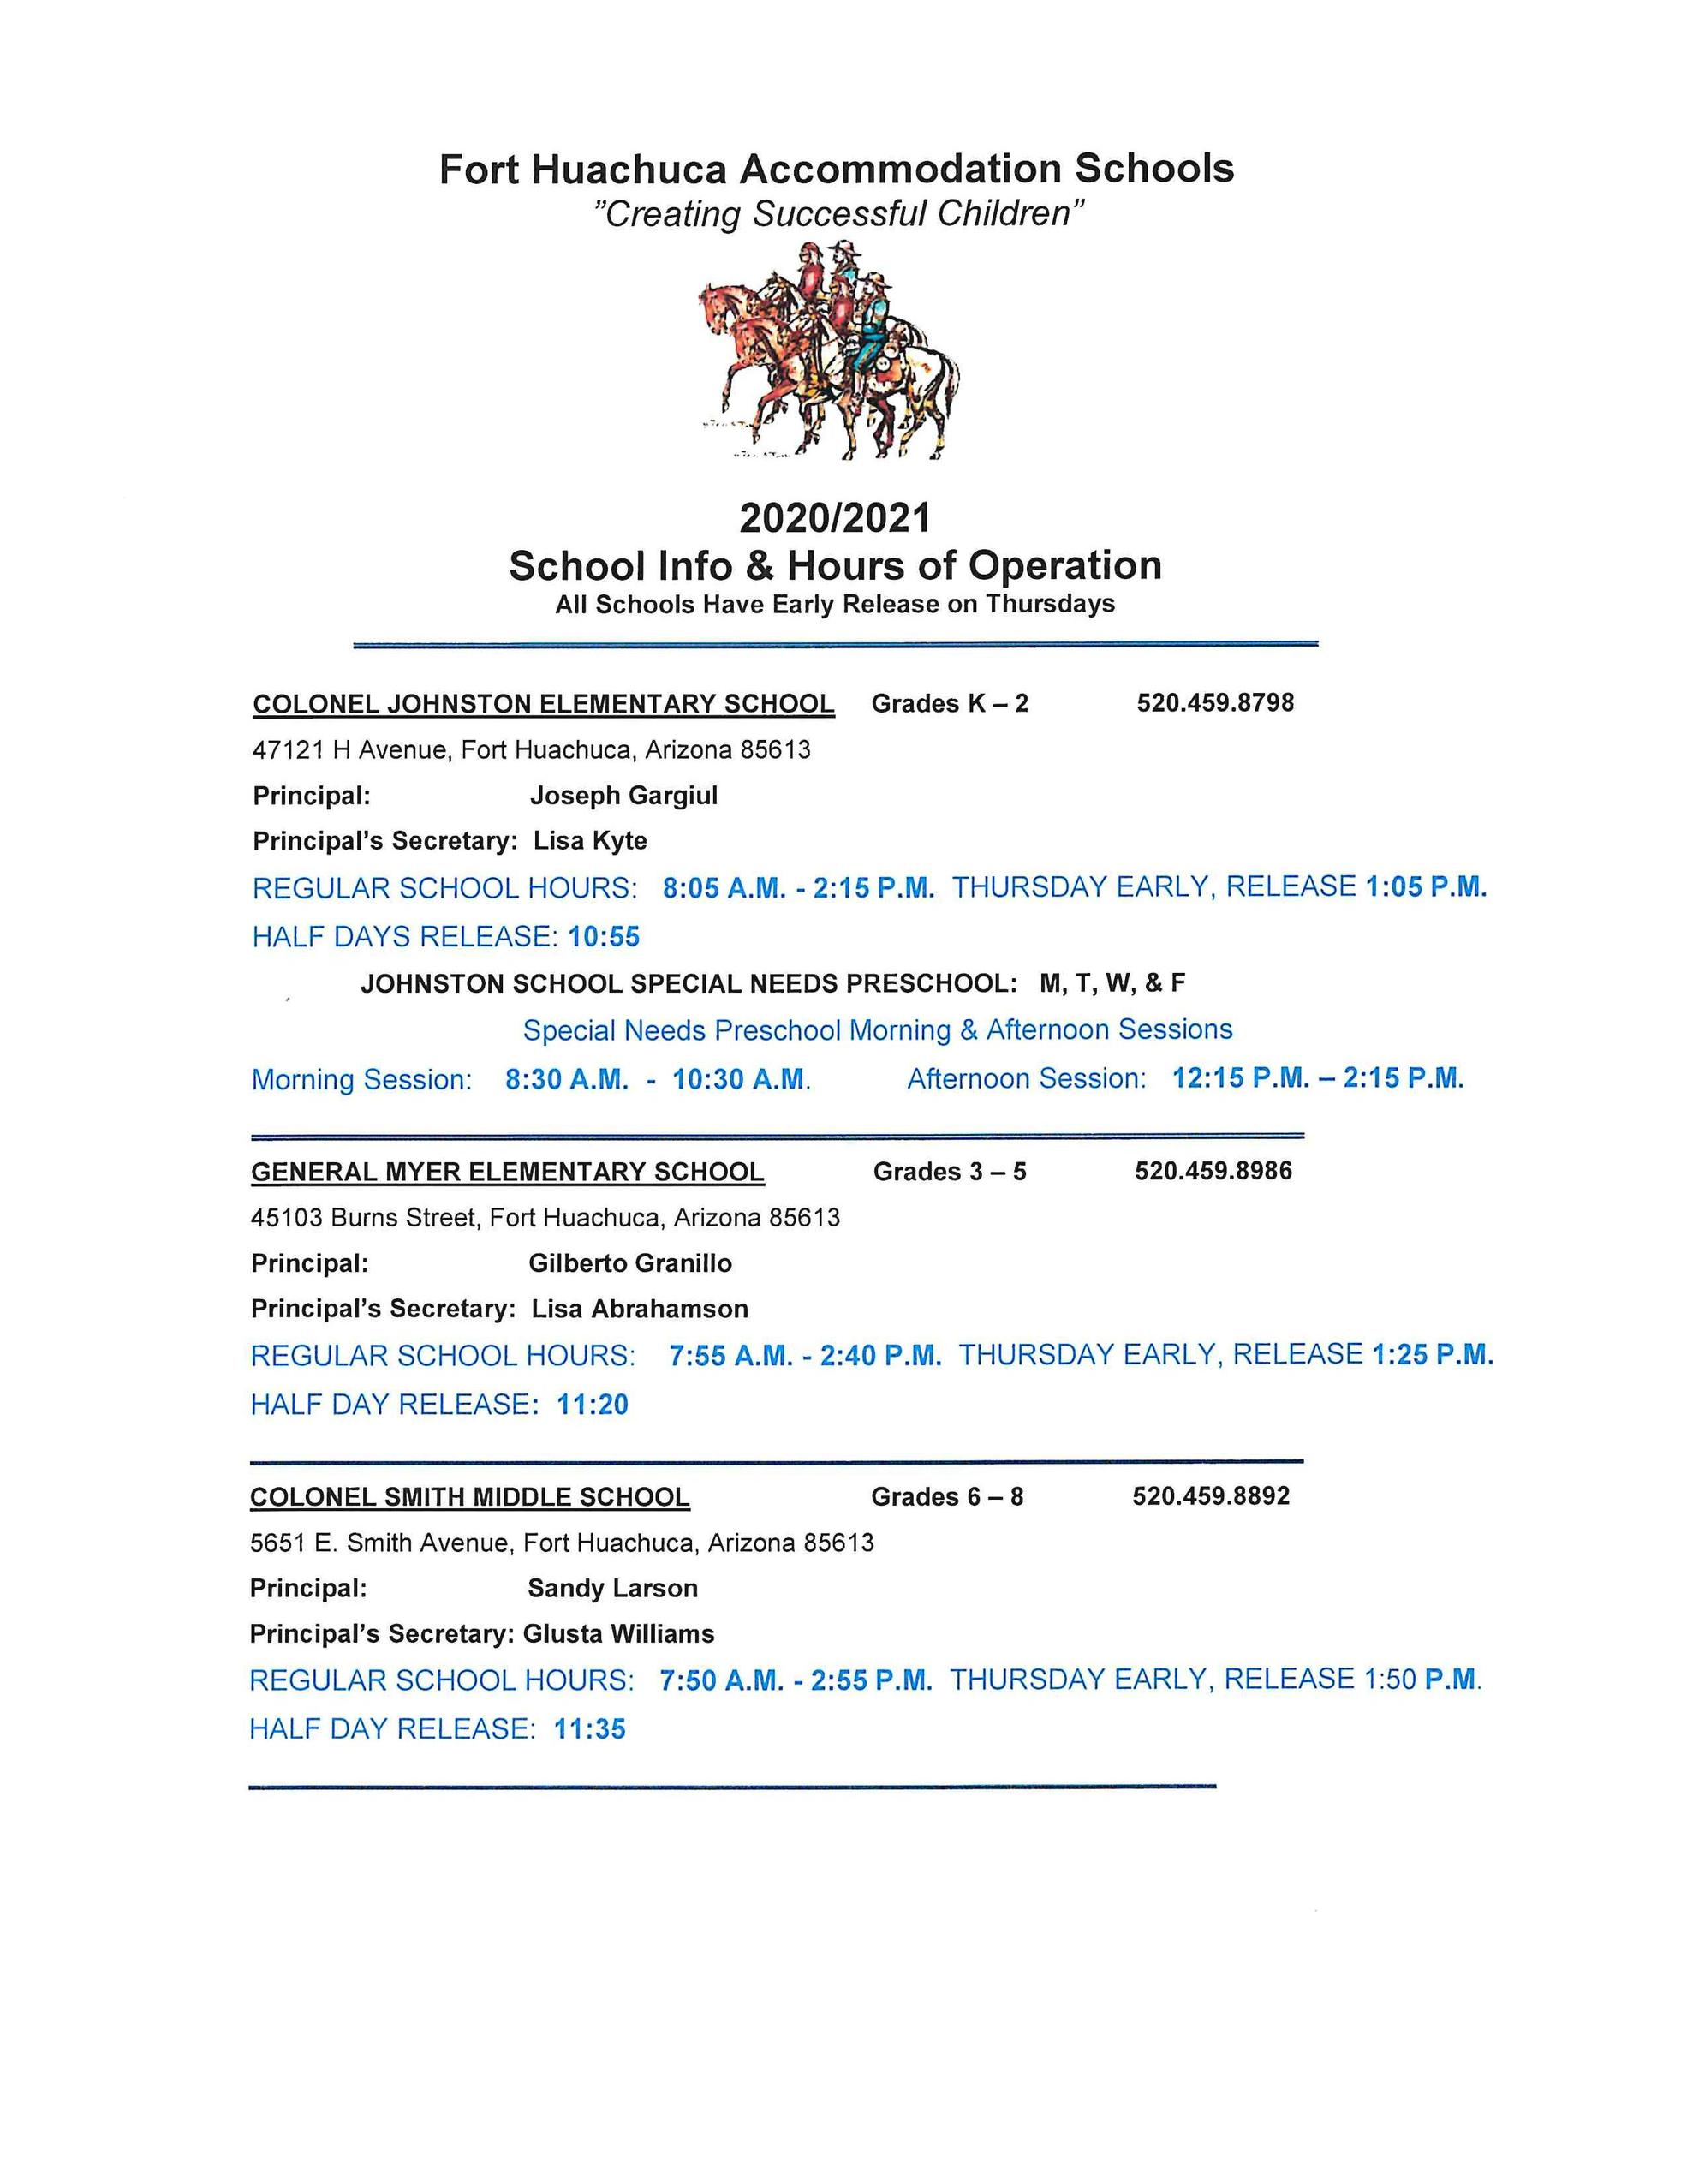 School Information and Hours